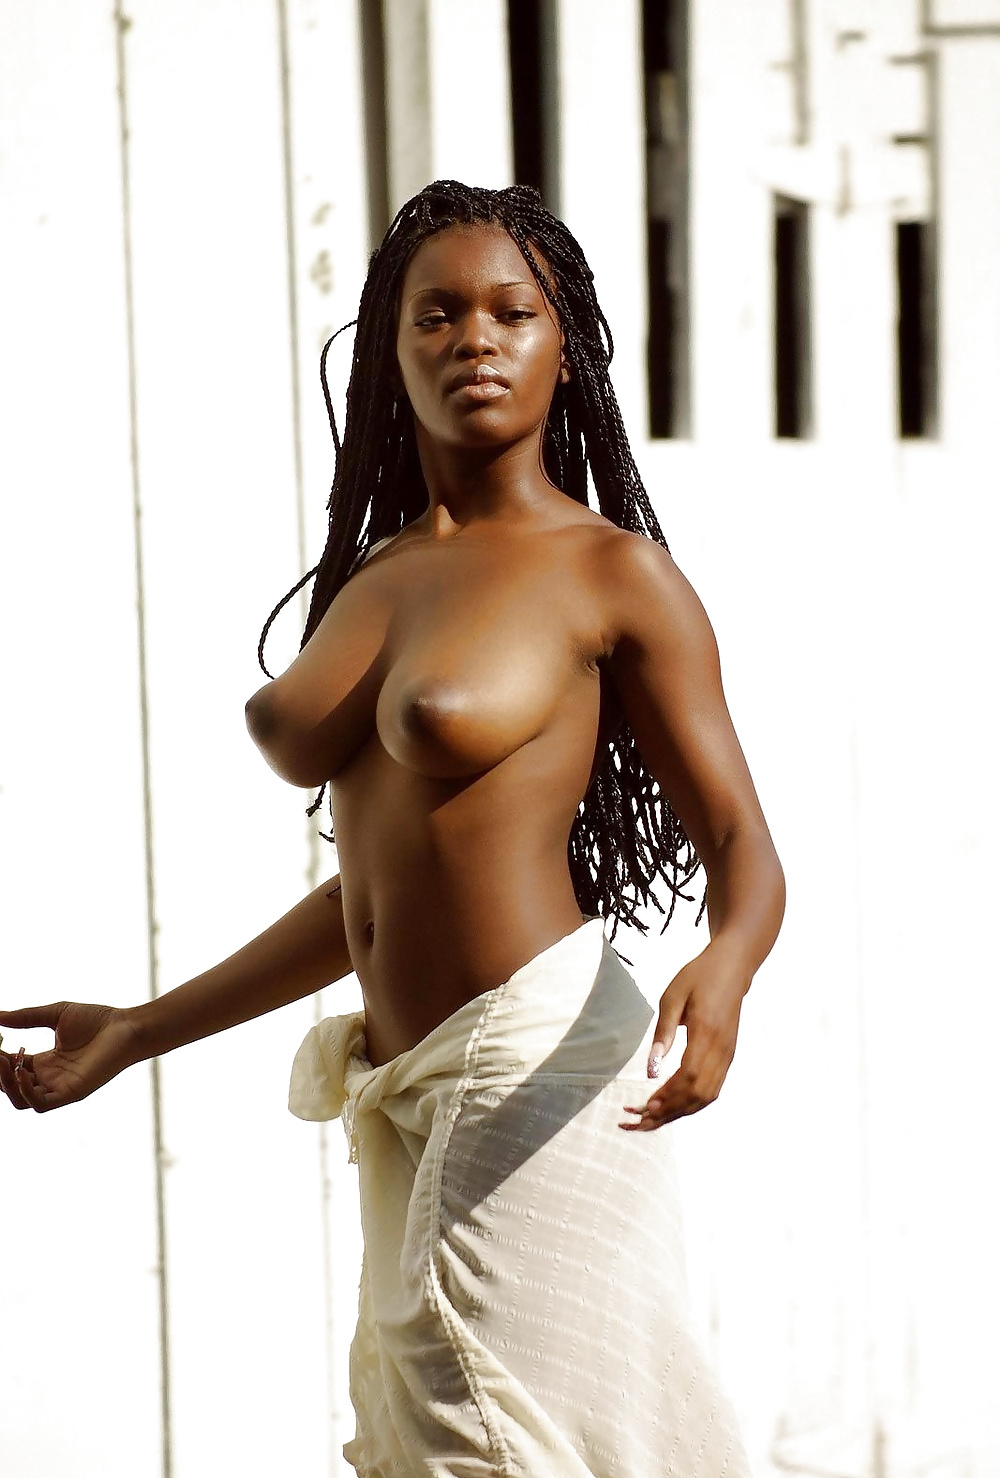 Sexy woman afroamerican model naked